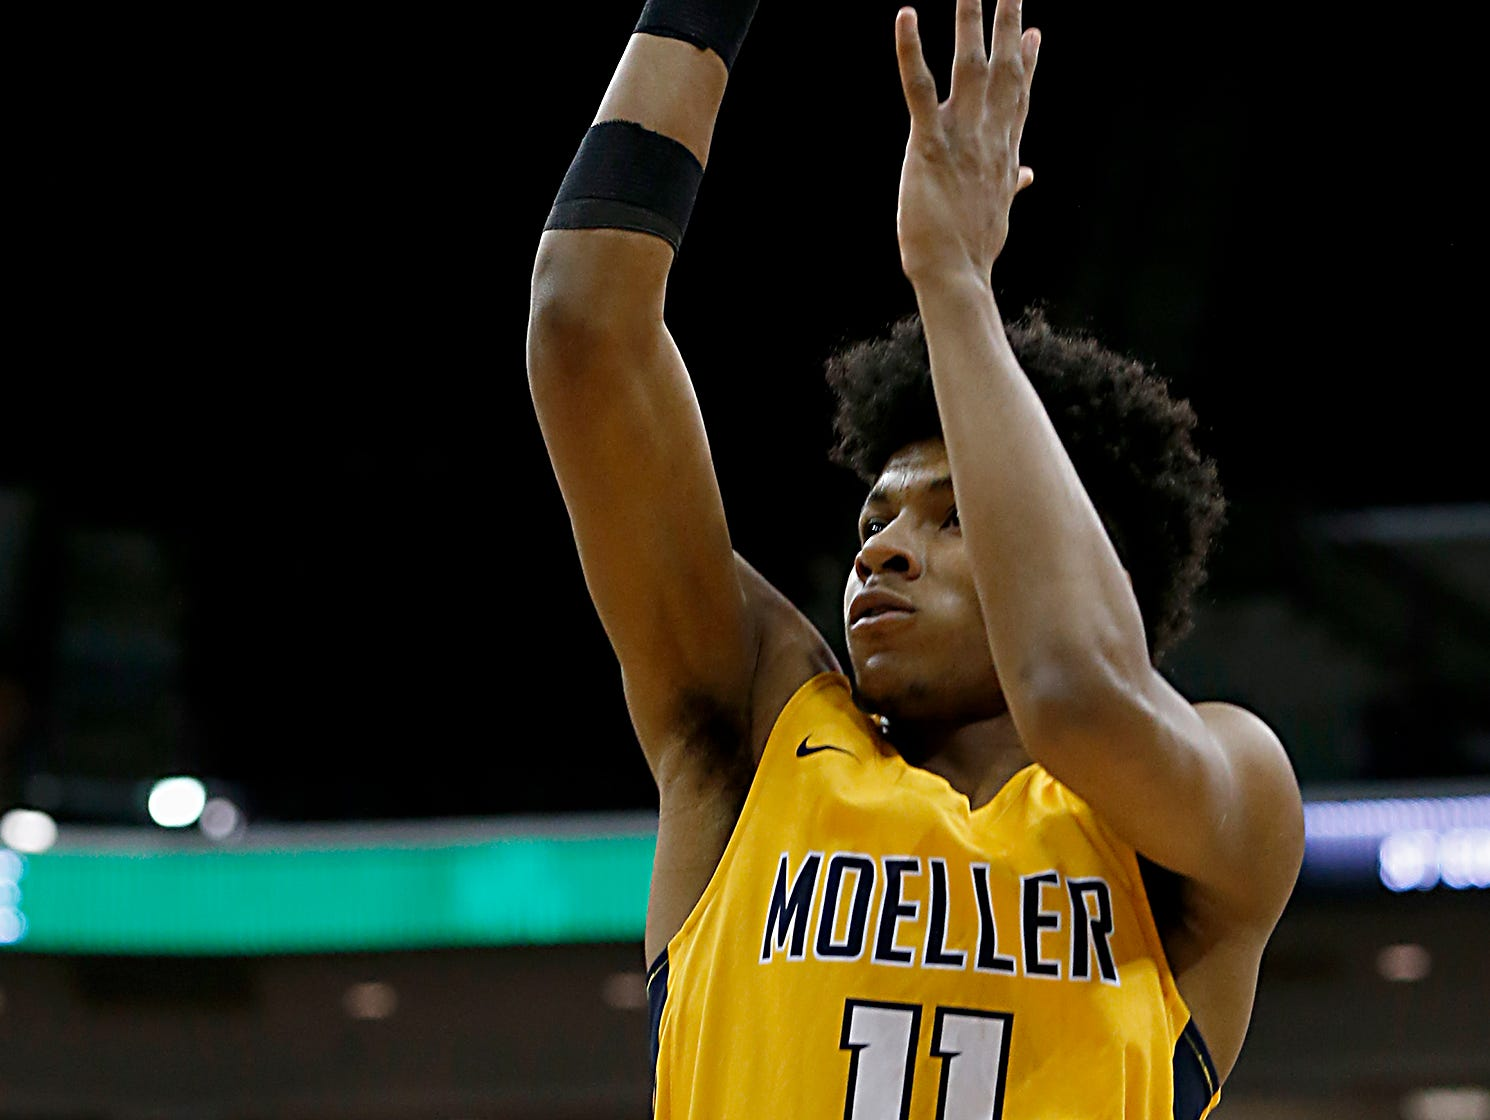 Moeller guard Miles McBride hits for two against St. Edward during their Division I semifinal at the Schottenstein Center in Columbus Friday, March 22, 2019.